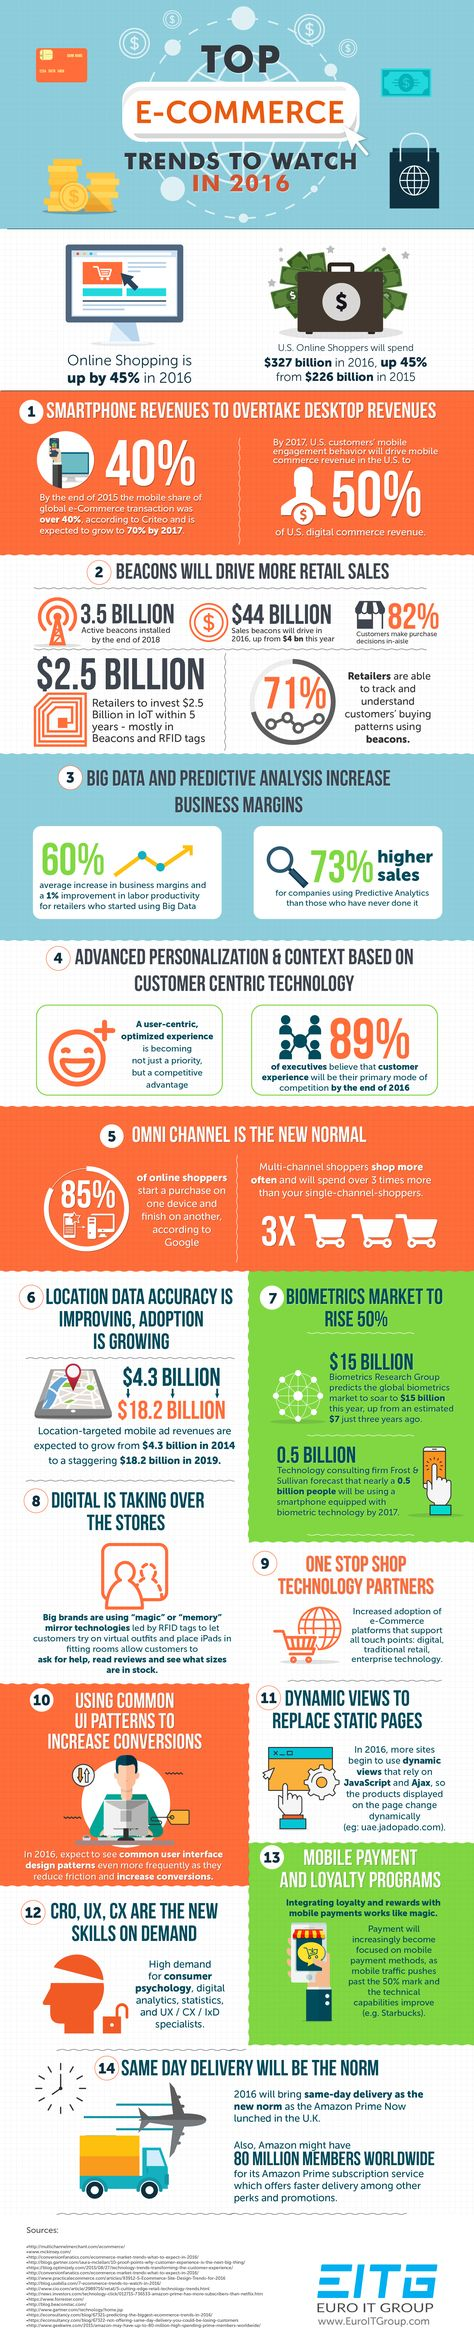 Infographic Explores 2016 Ecommerce Trends to Watch